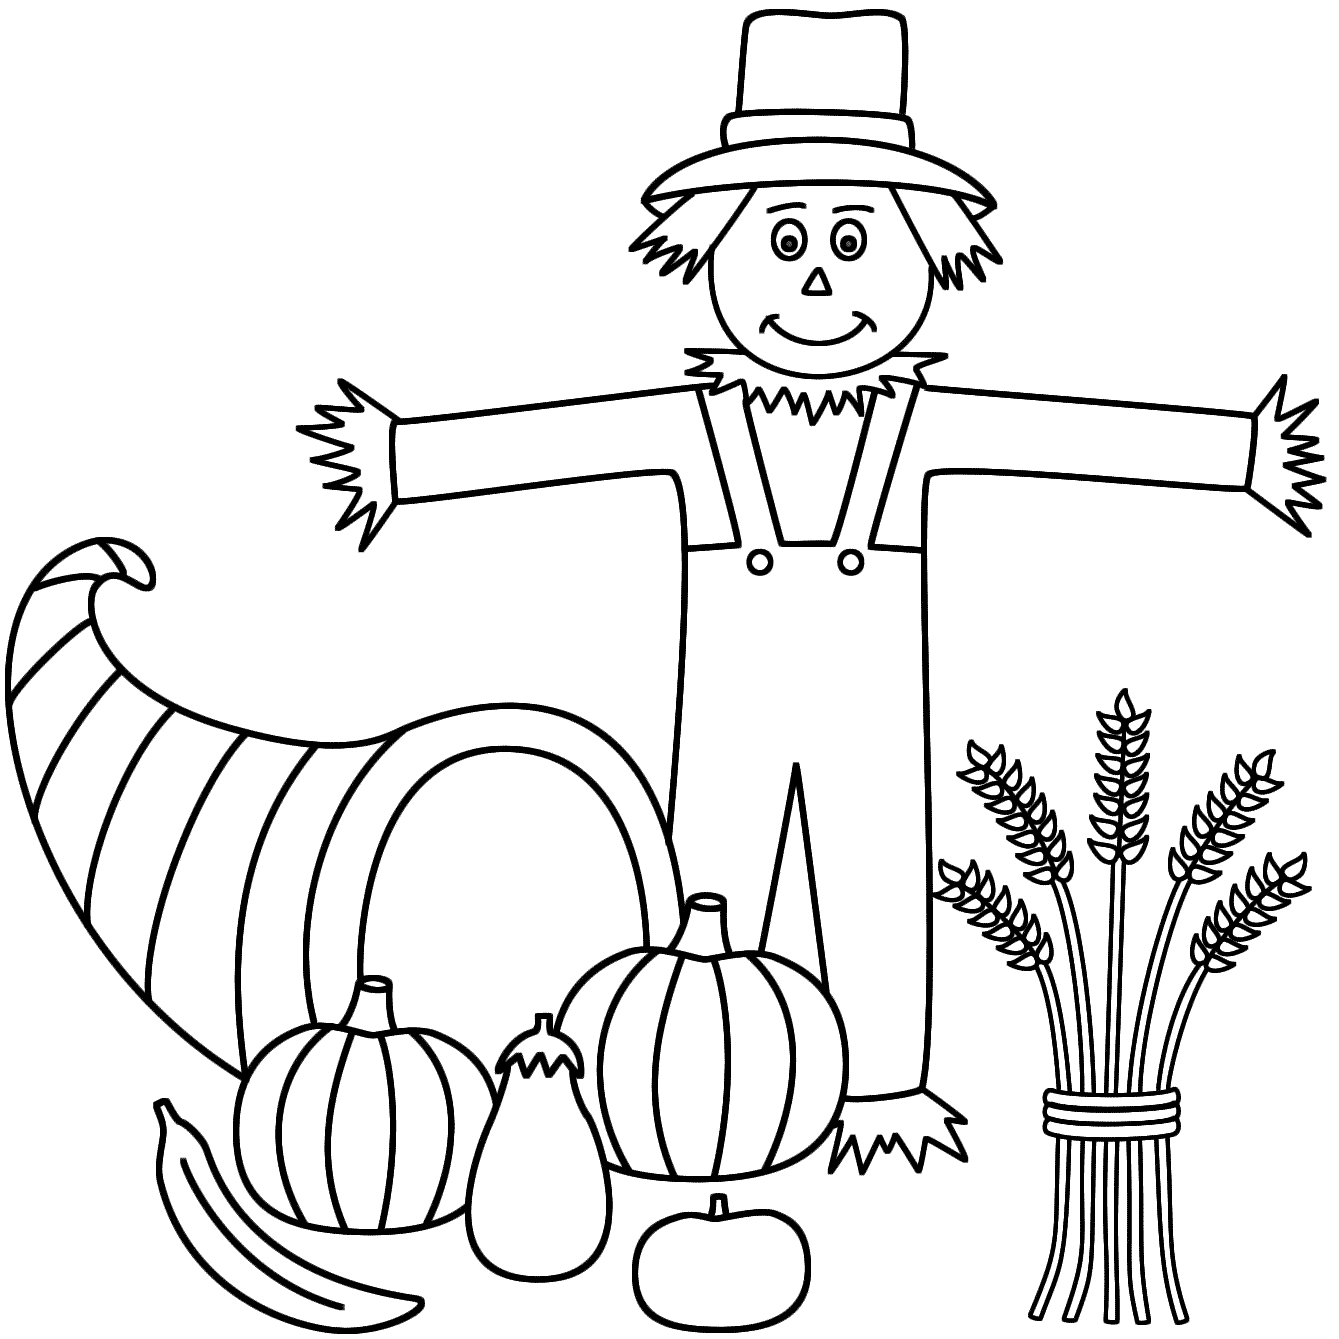 scarecrow coloring pages scarecrow coloring pages to download and print for free scarecrow coloring pages